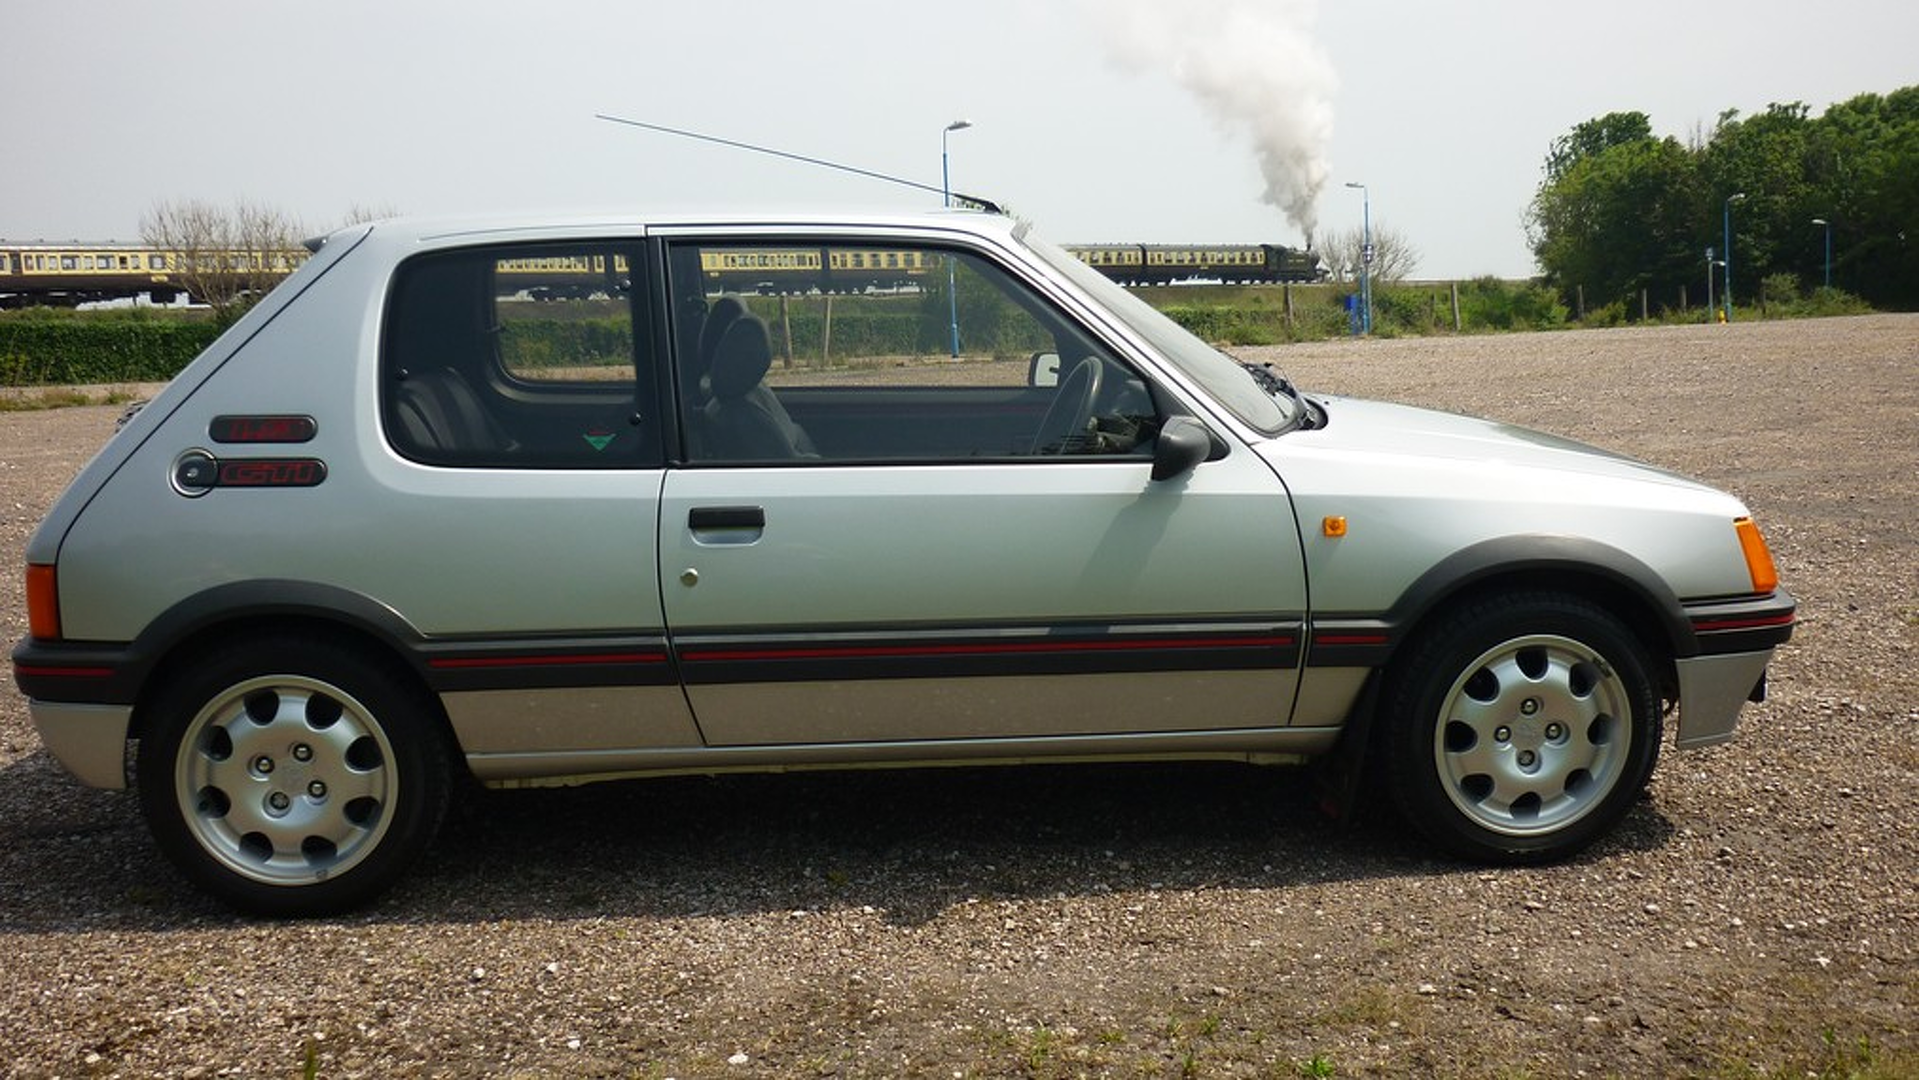 1989 Peugeot 205 GTI sells for   31k and sets new world auction record product 2016-08-06 08:22:50